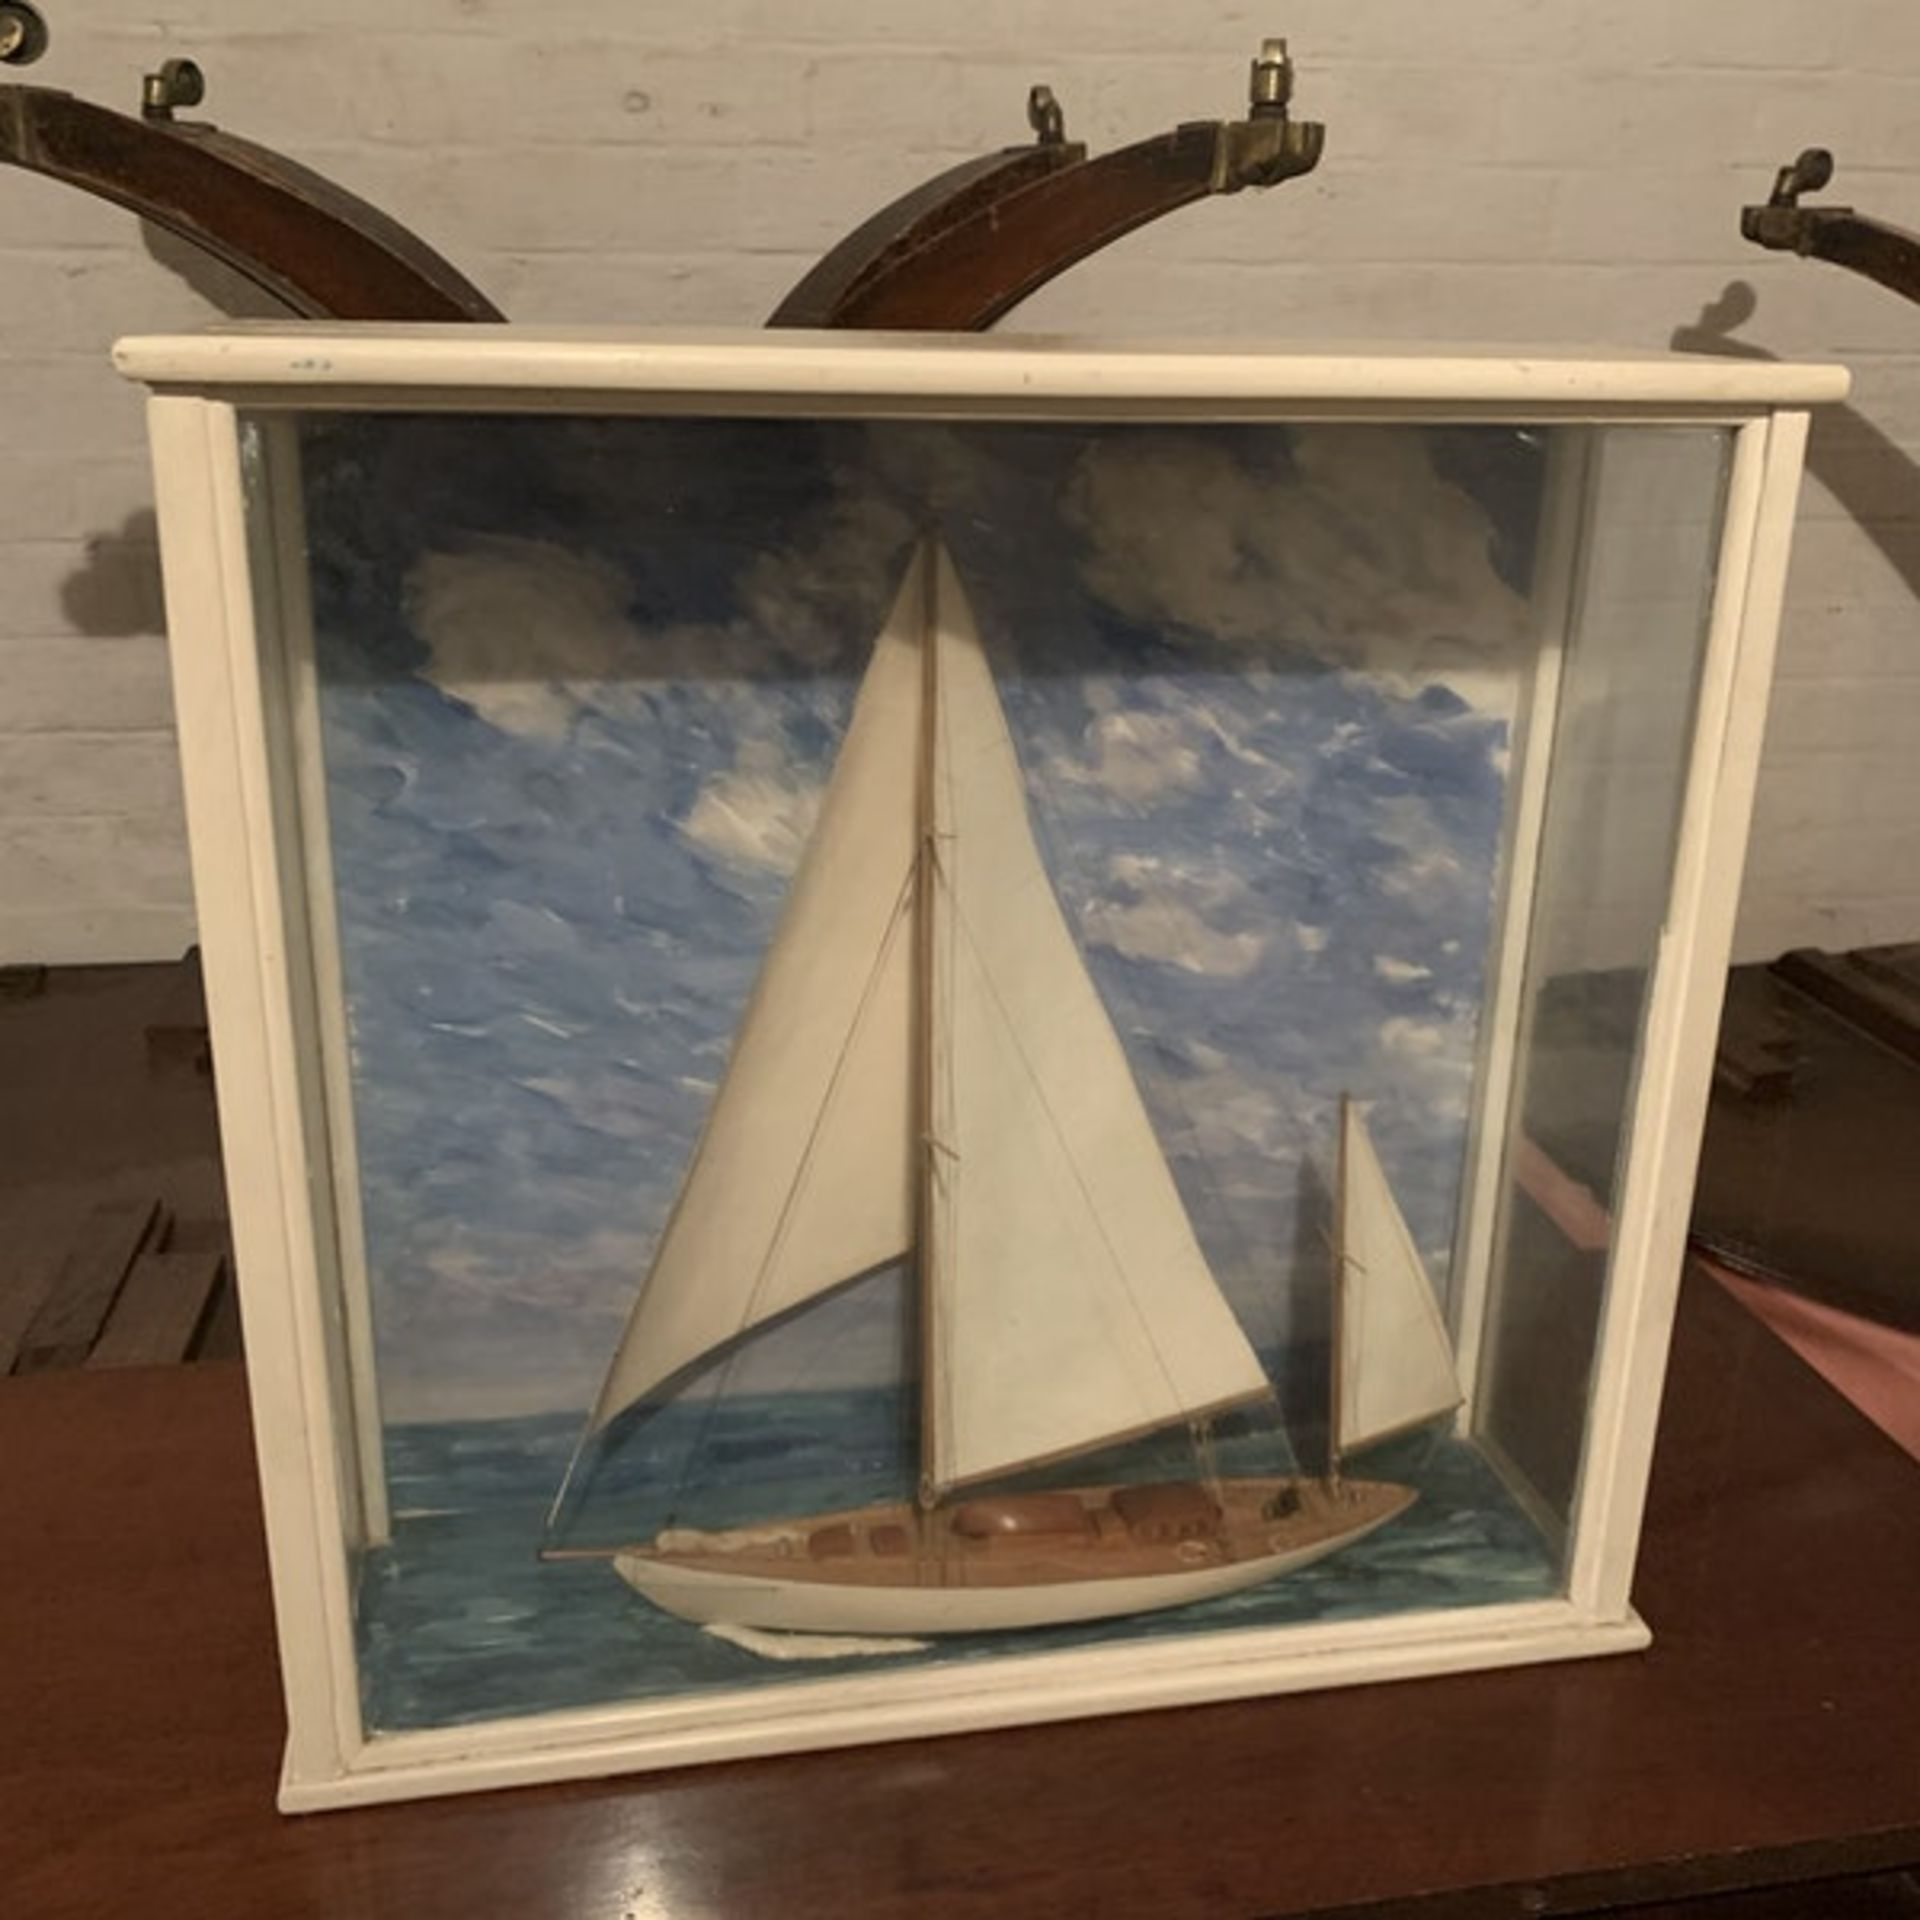 A scratch built model of a sailing yacht in a glass and painted wooden case. A scratch built model